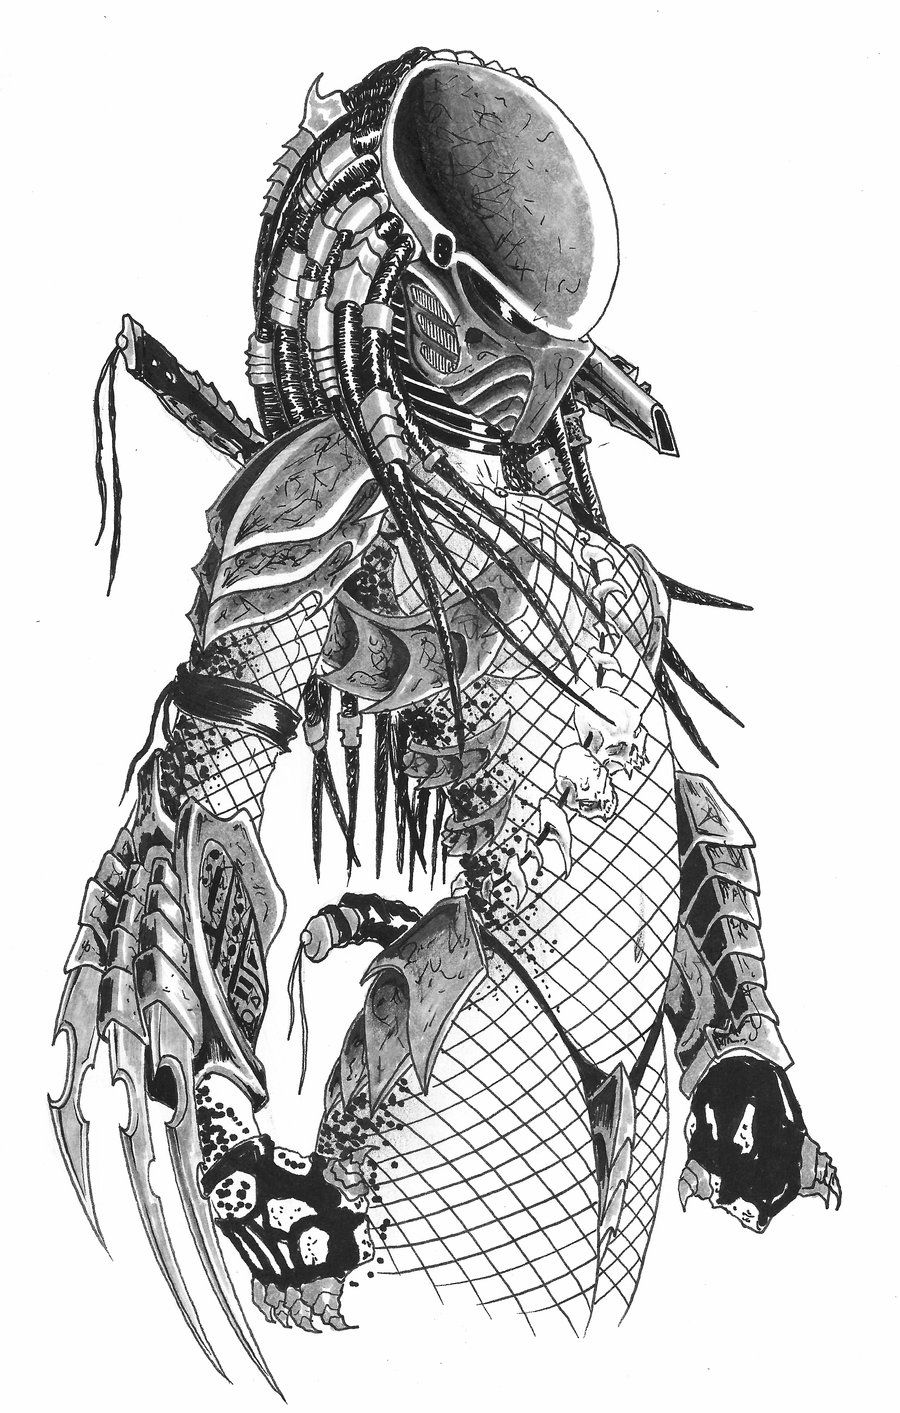 Predator Female!!! This is amazing!!!!! What an awesome costume ...